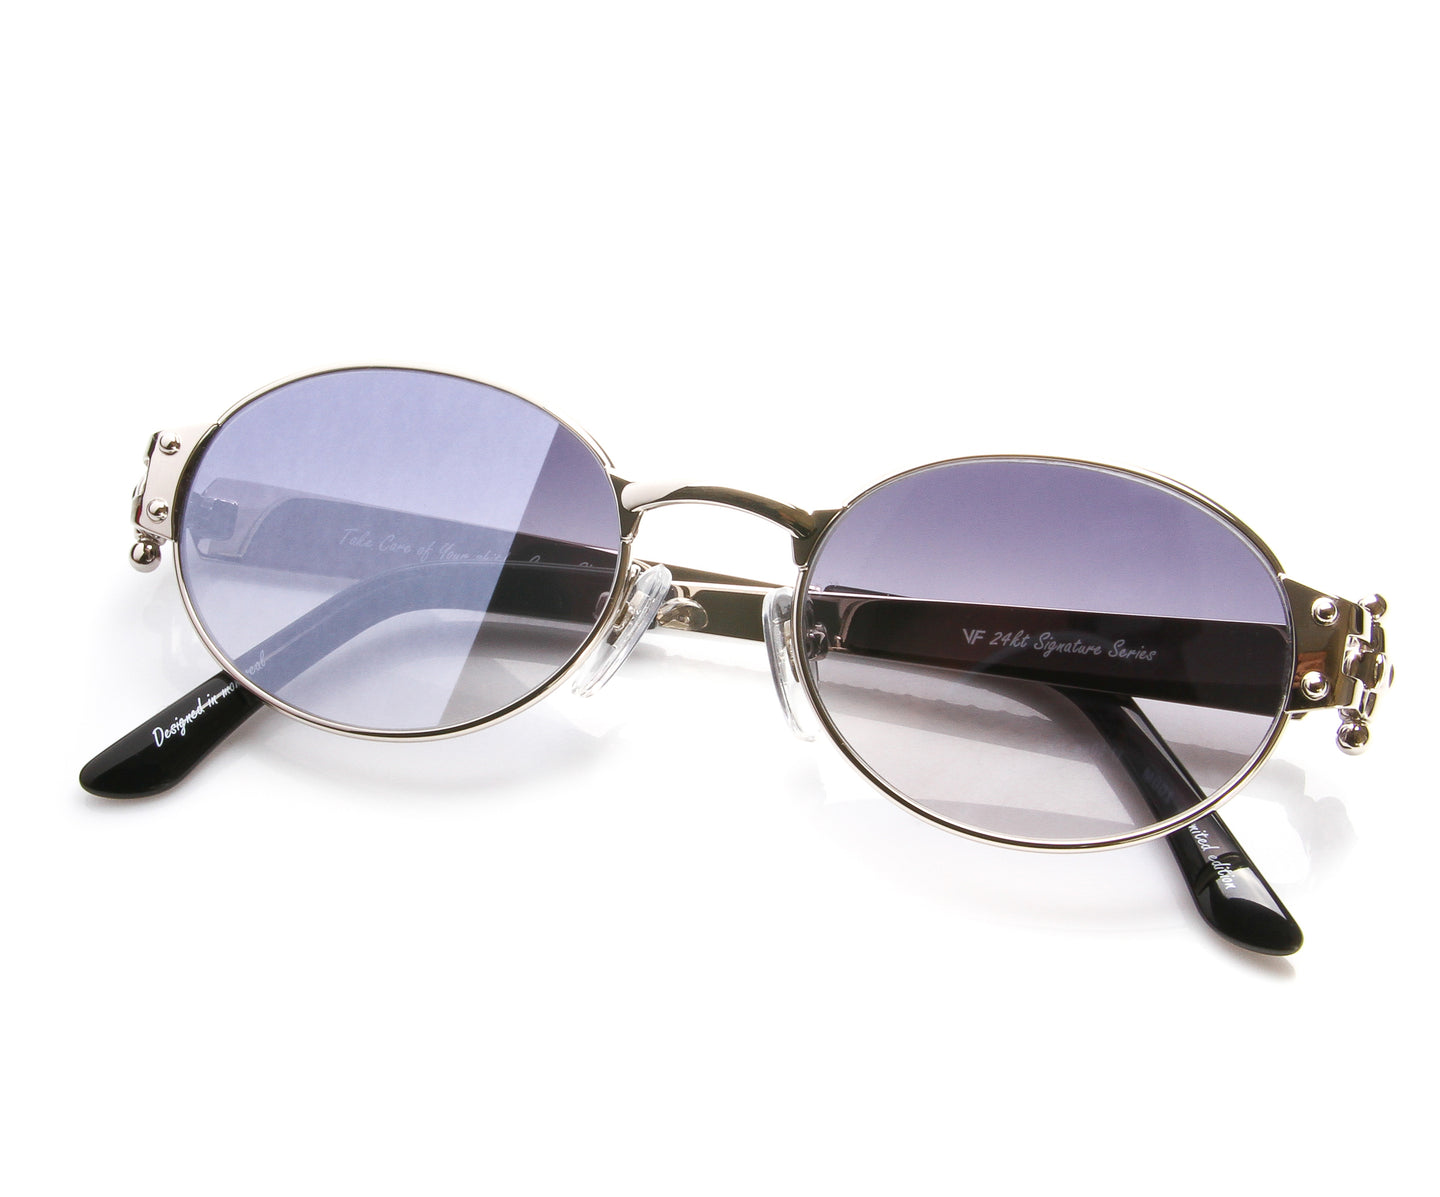 VF 2000 24KT White Gold Masterpiece (Gray Flash Blue), VF Masterpiece , glasses frames, eyeglasses online, eyeglass frames, mens glasses, womens glasses, buy glasses online, designer eyeglasses, vintage sunglasses, retro sunglasses, vintage glasses, sunglass, eyeglass, glasses, lens, vintage frames company, vf